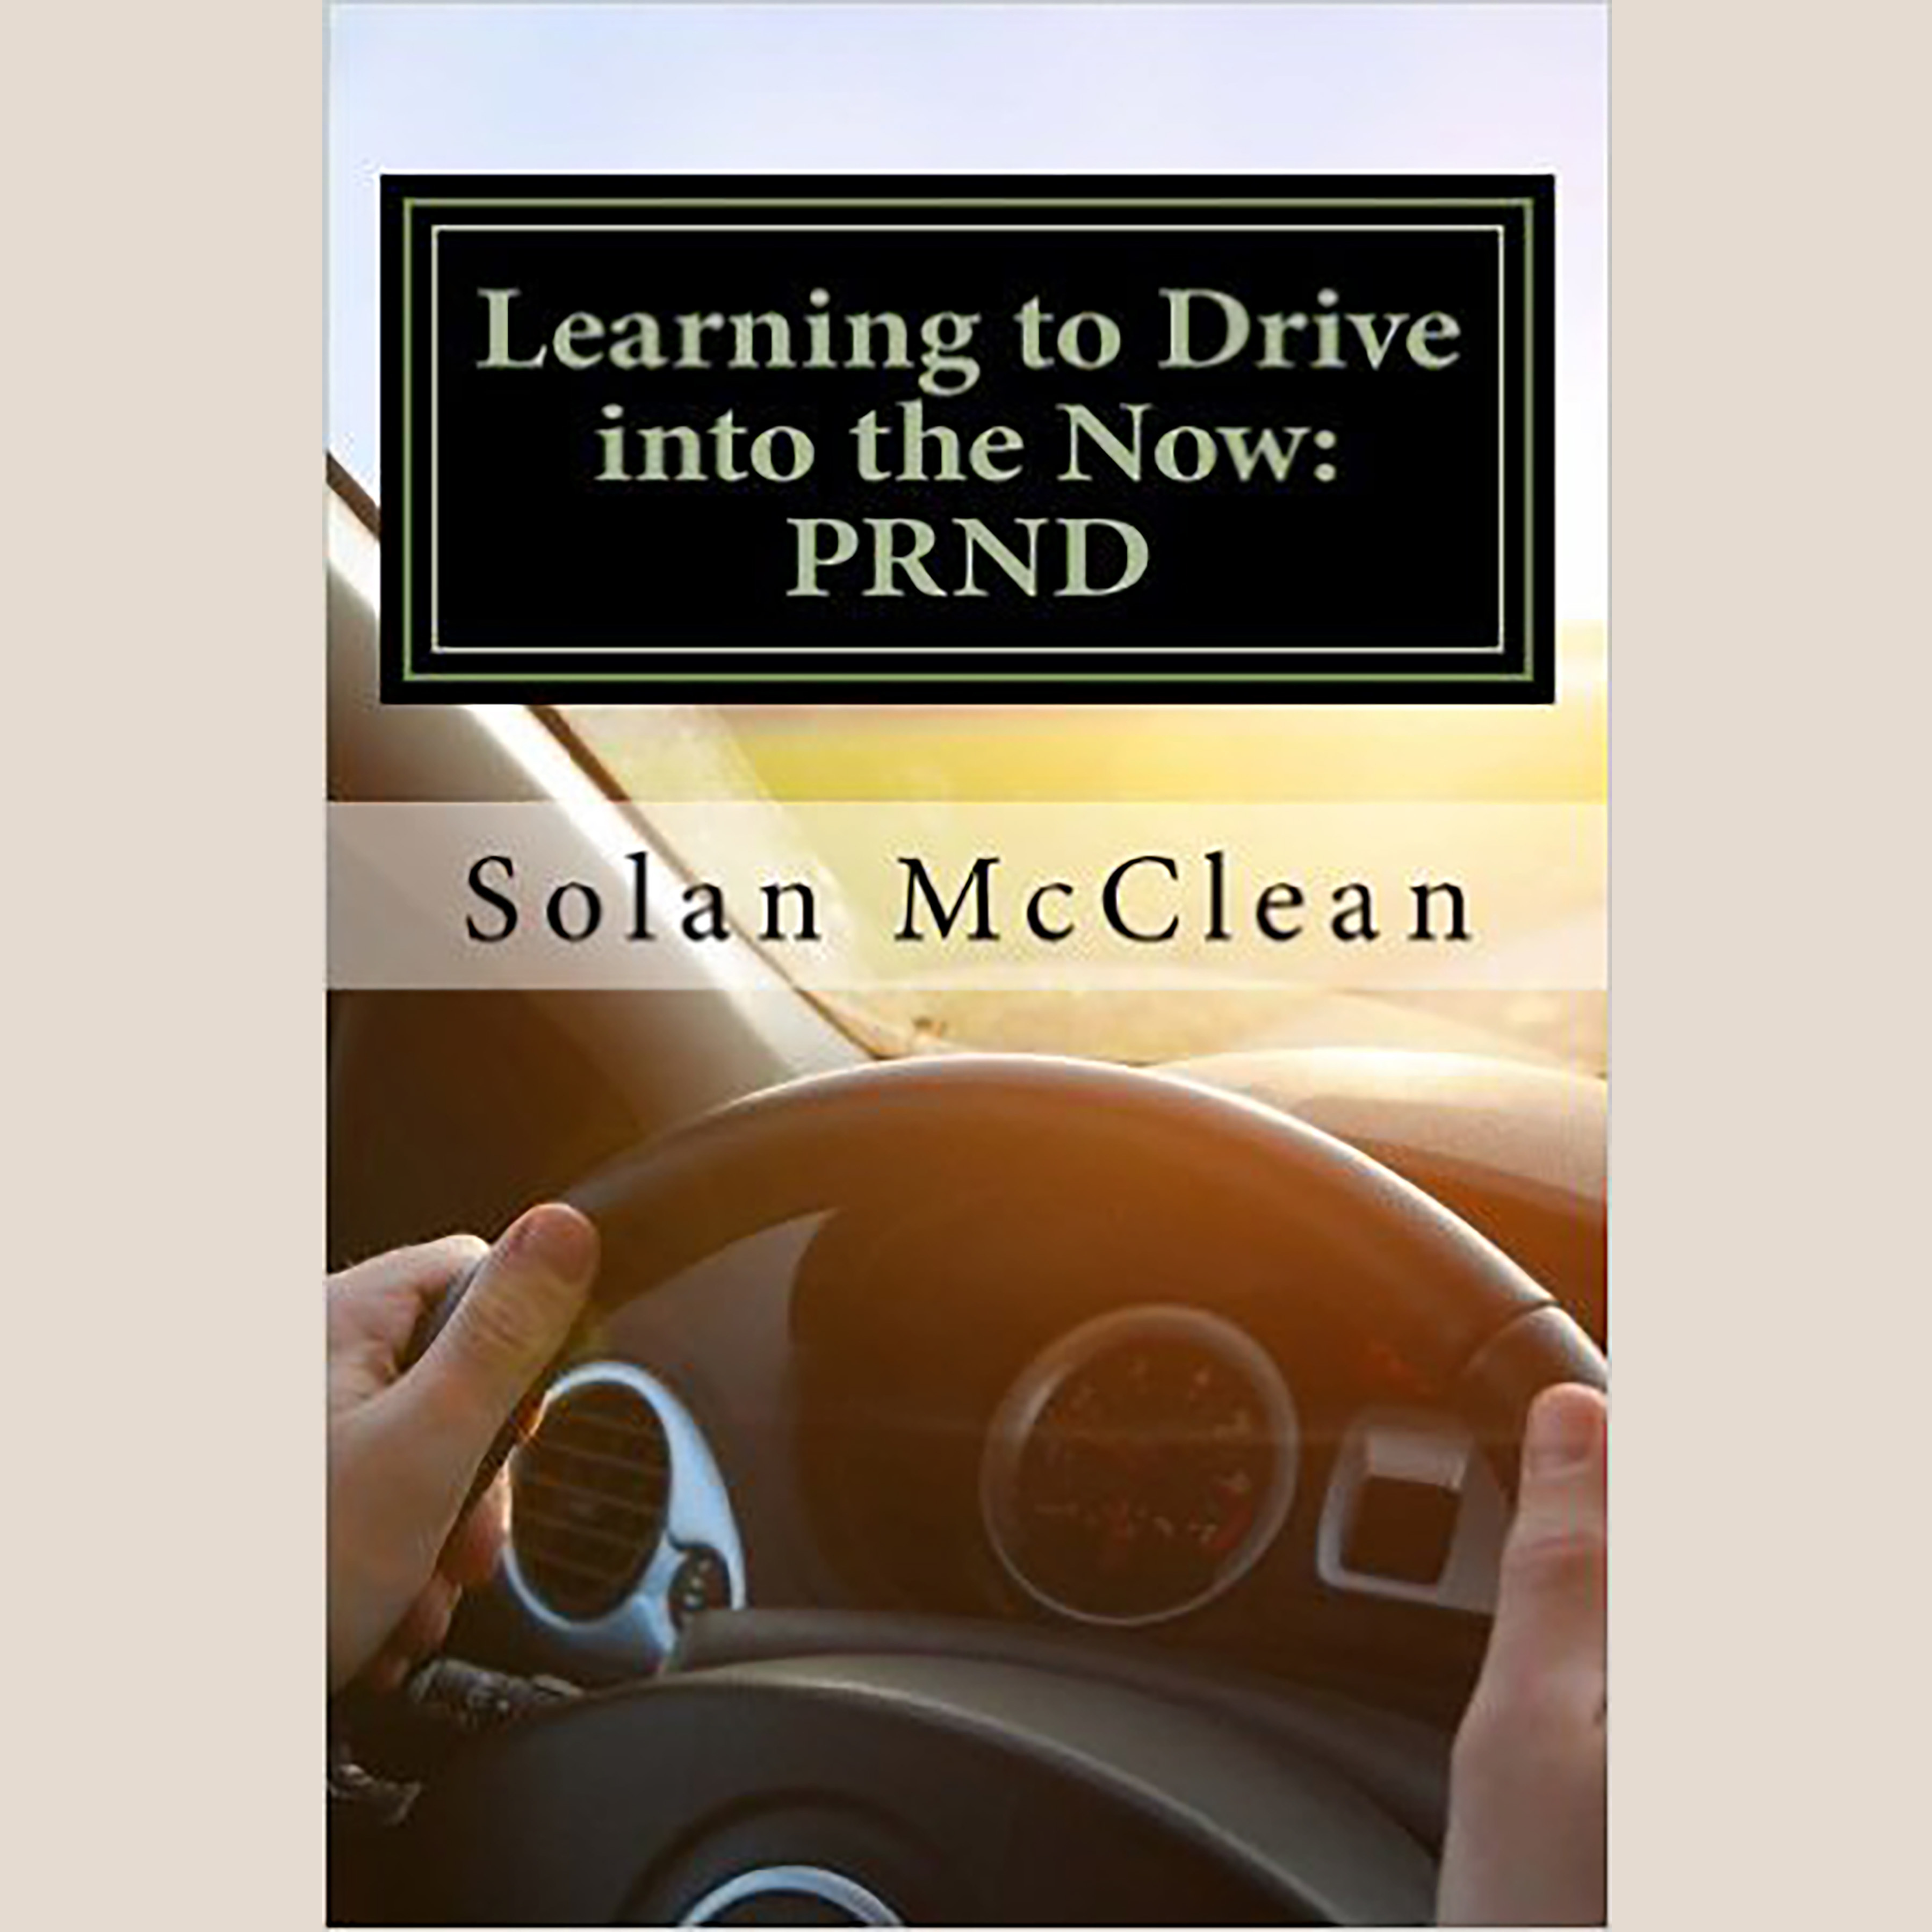 Printable Learning to Drive into the Now:PRND Audiobook Cover Art